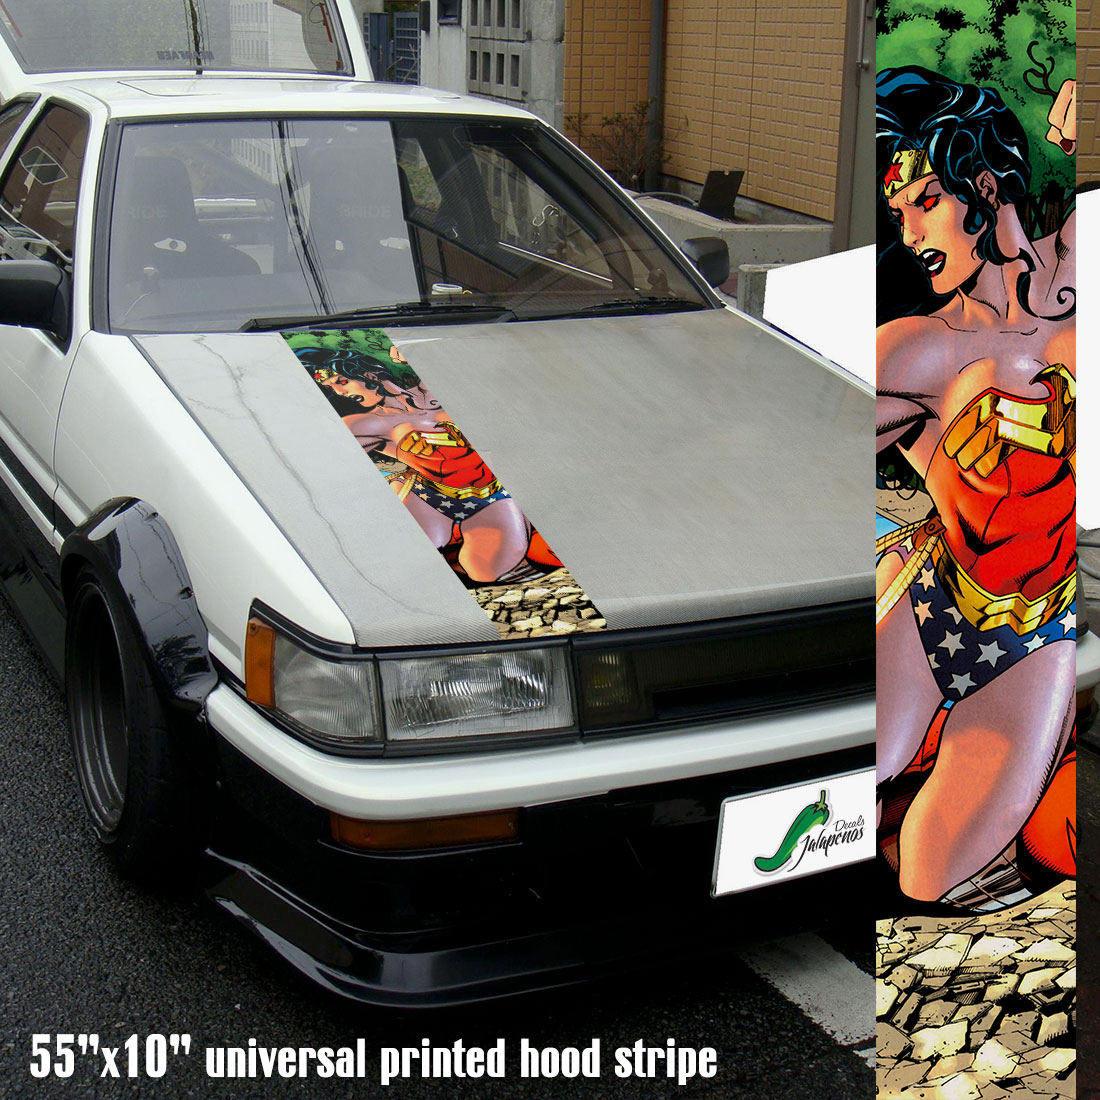 "55"" Hood Printed Stripe Diana Prince Comic Woman Warrior v1 Sexy Lady Driven Girl Car Vinyl Sticker Decal"